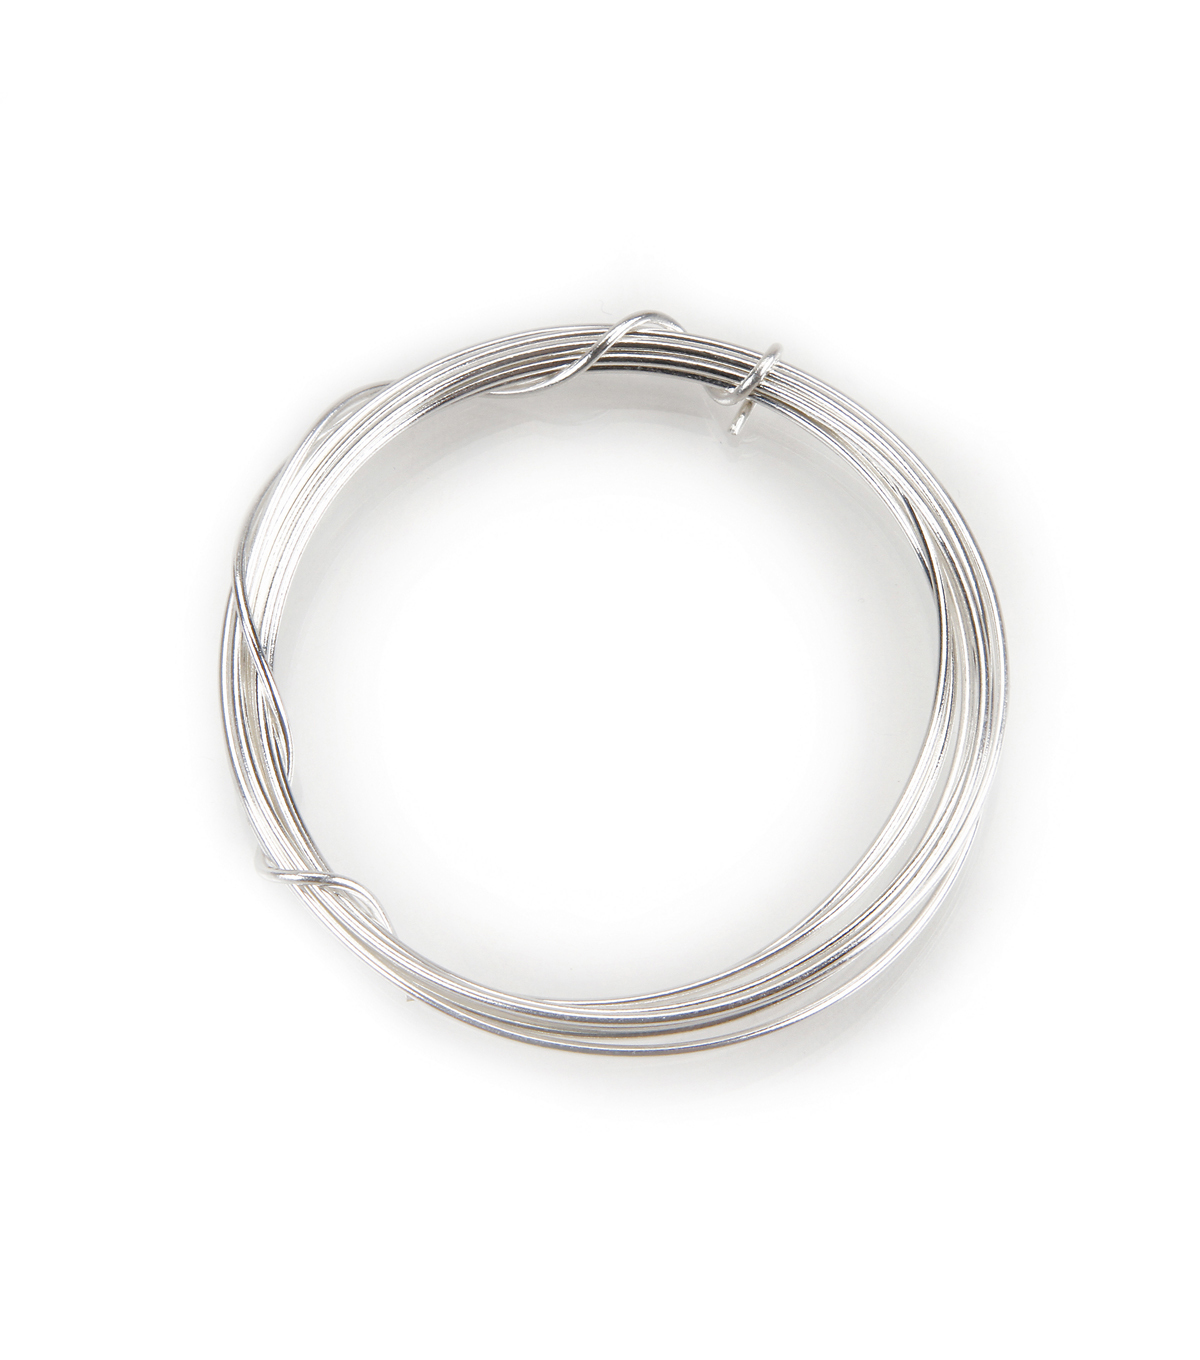 Sterling Silver Wire - Plated Jewelry Wire | JOANN